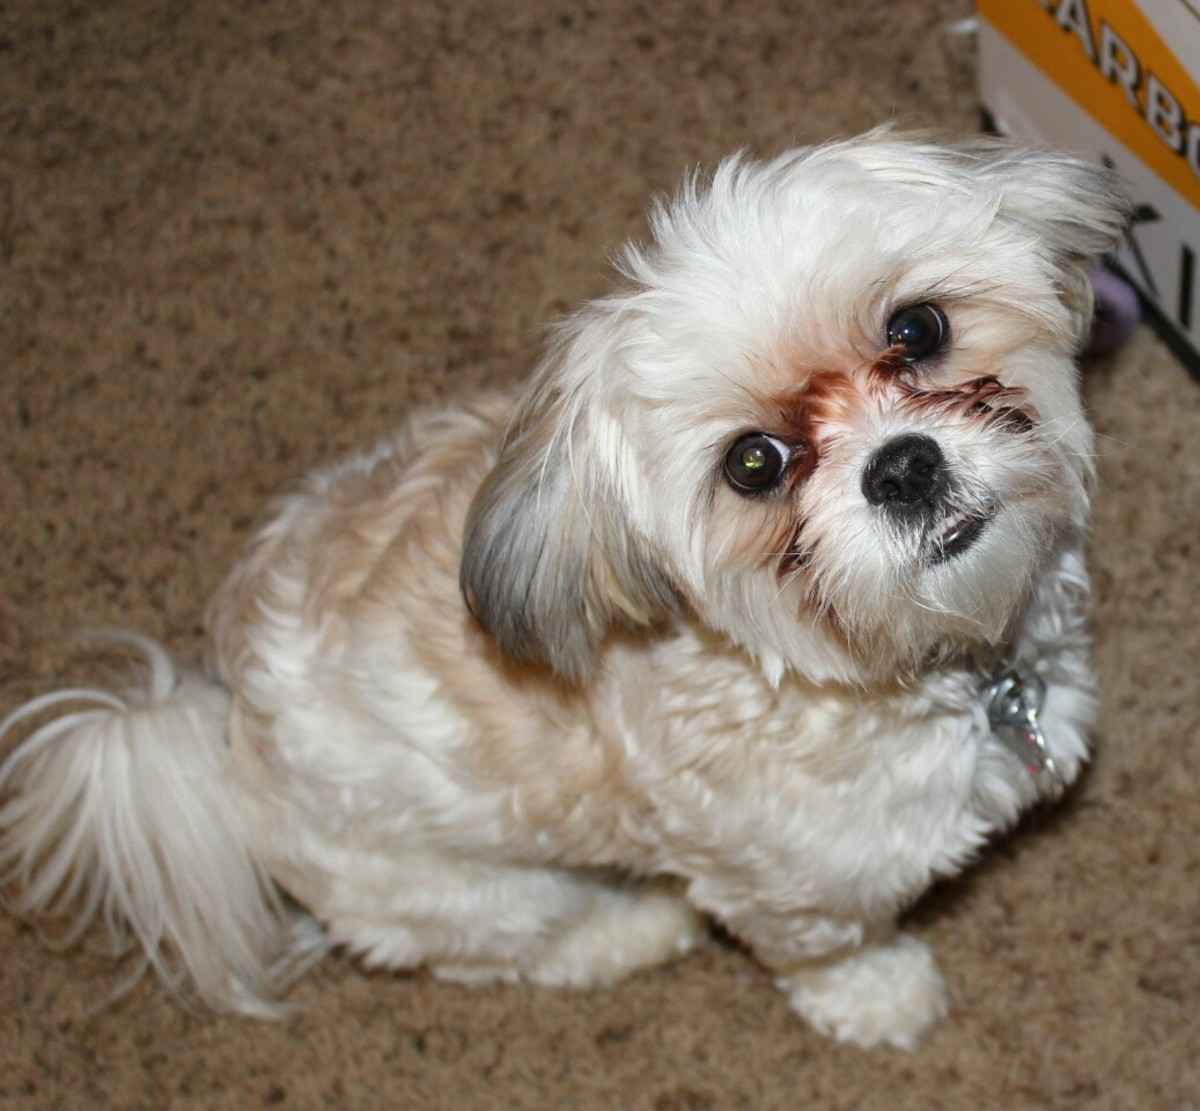 Malshi (cross of Maltese and Shih Tzu) at 1 year old adult size